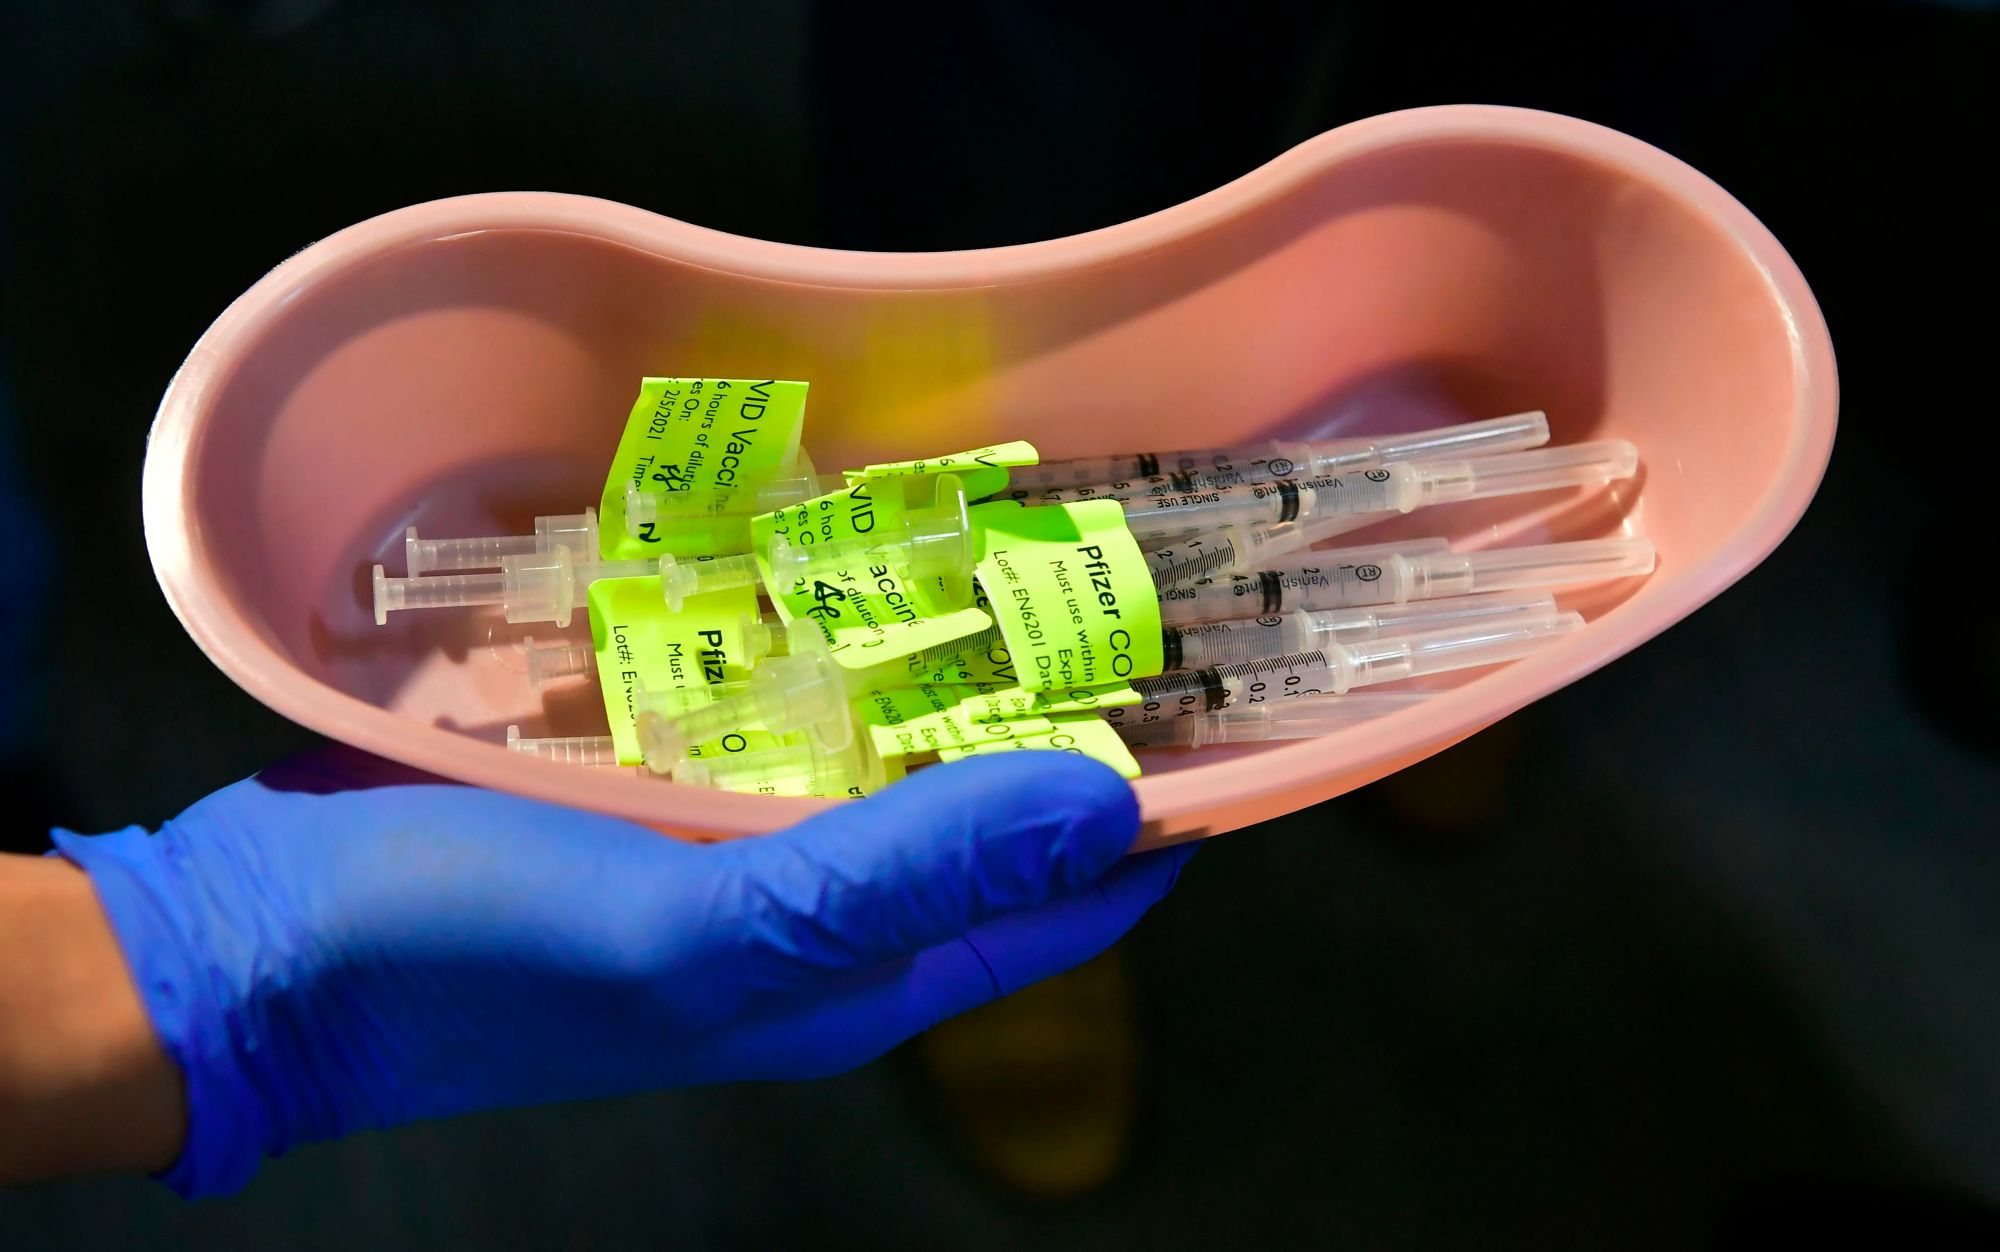 Syringes filled with the Pfizer COVID-19 vaccine are displayed on the opening day of a large-scale vaccination site at a parking structure in Pomona on Feb. 5, 2021. (FREDERIC J. BROWN/AFP via Getty Images)